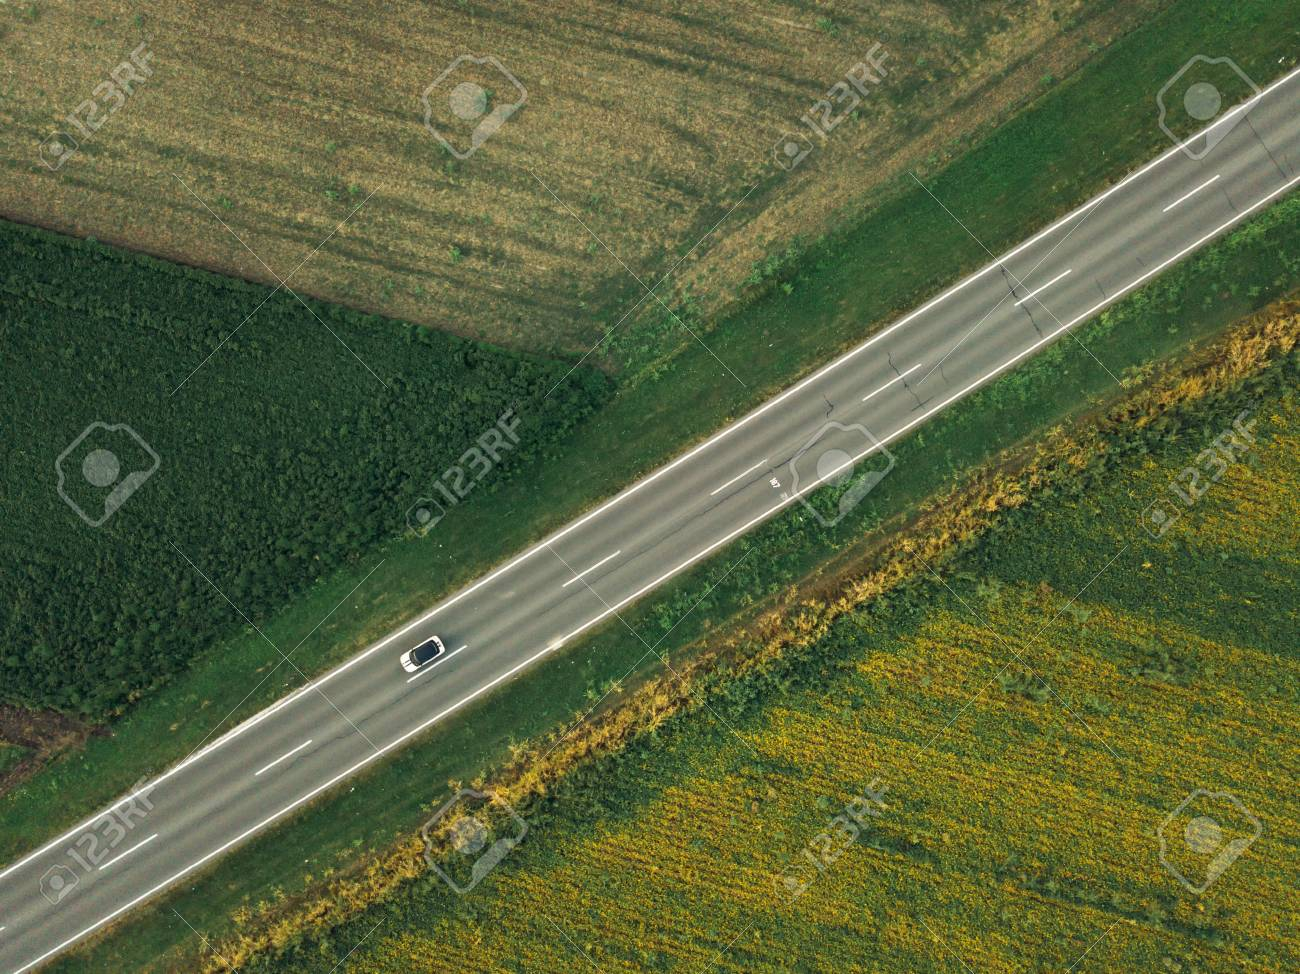 Aerial Shot Of Car On The Road From Drone Point Of View Stock Photo Picture And Royalty Free Image Image 108373749